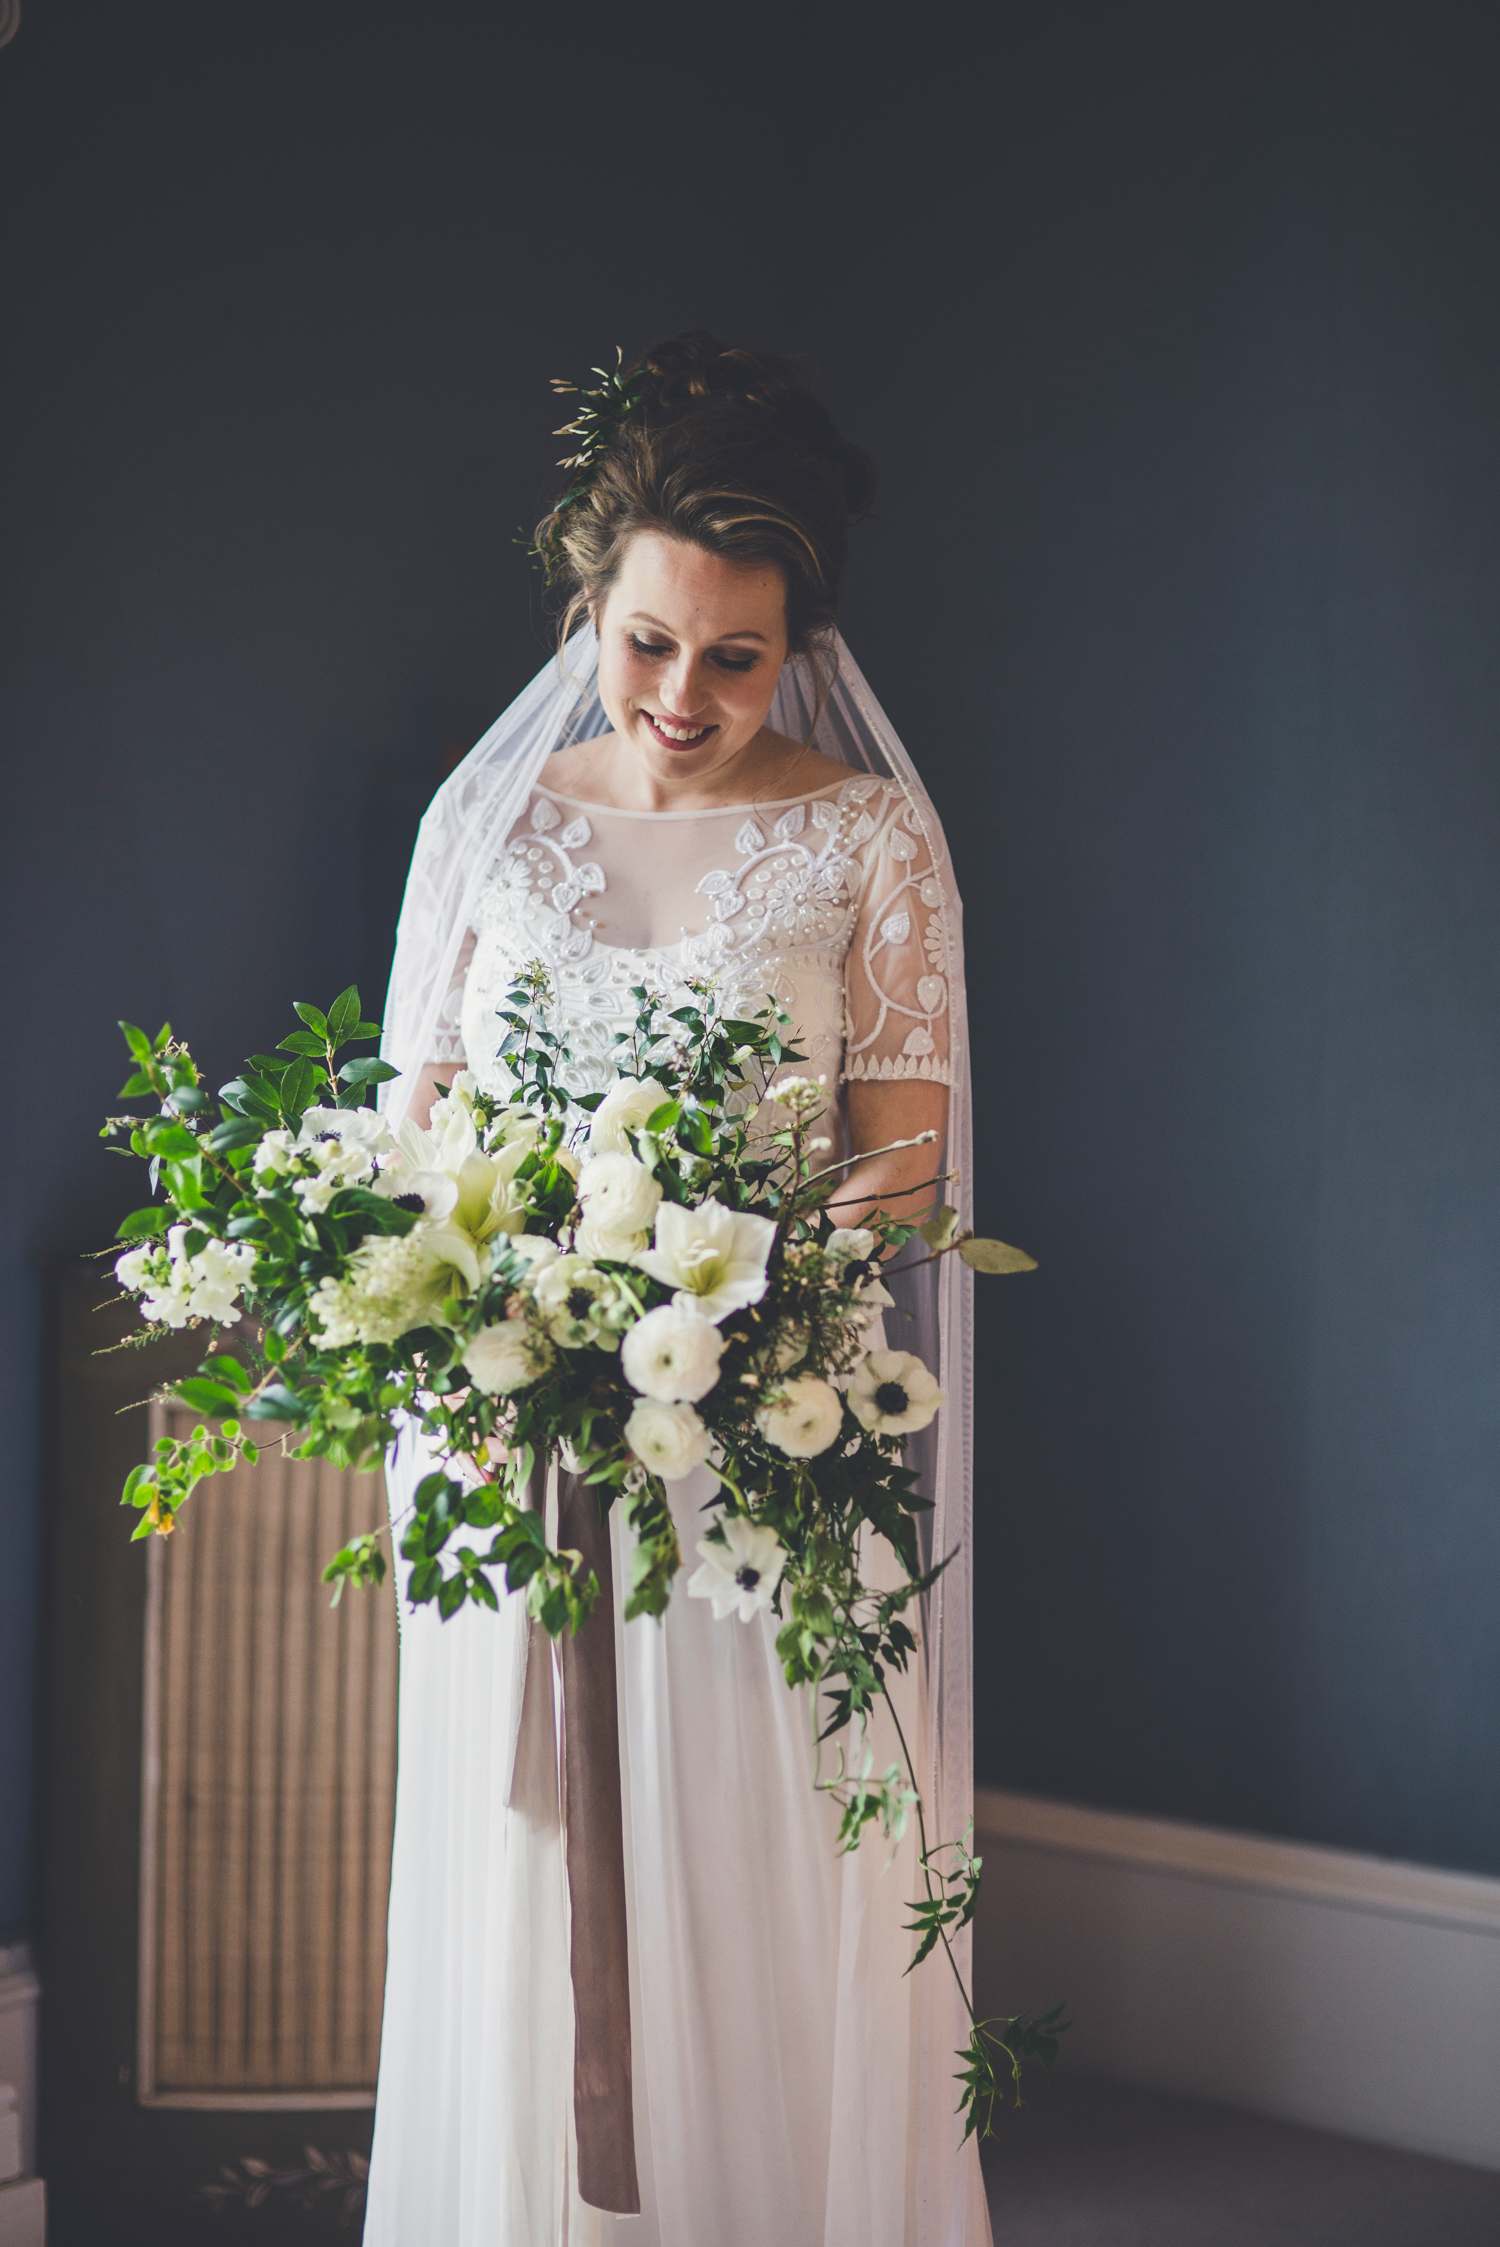 Poppy's Bridal Boquet - Technically a 2015 New Year's Eve Wedding - image by Amy Shore Photography